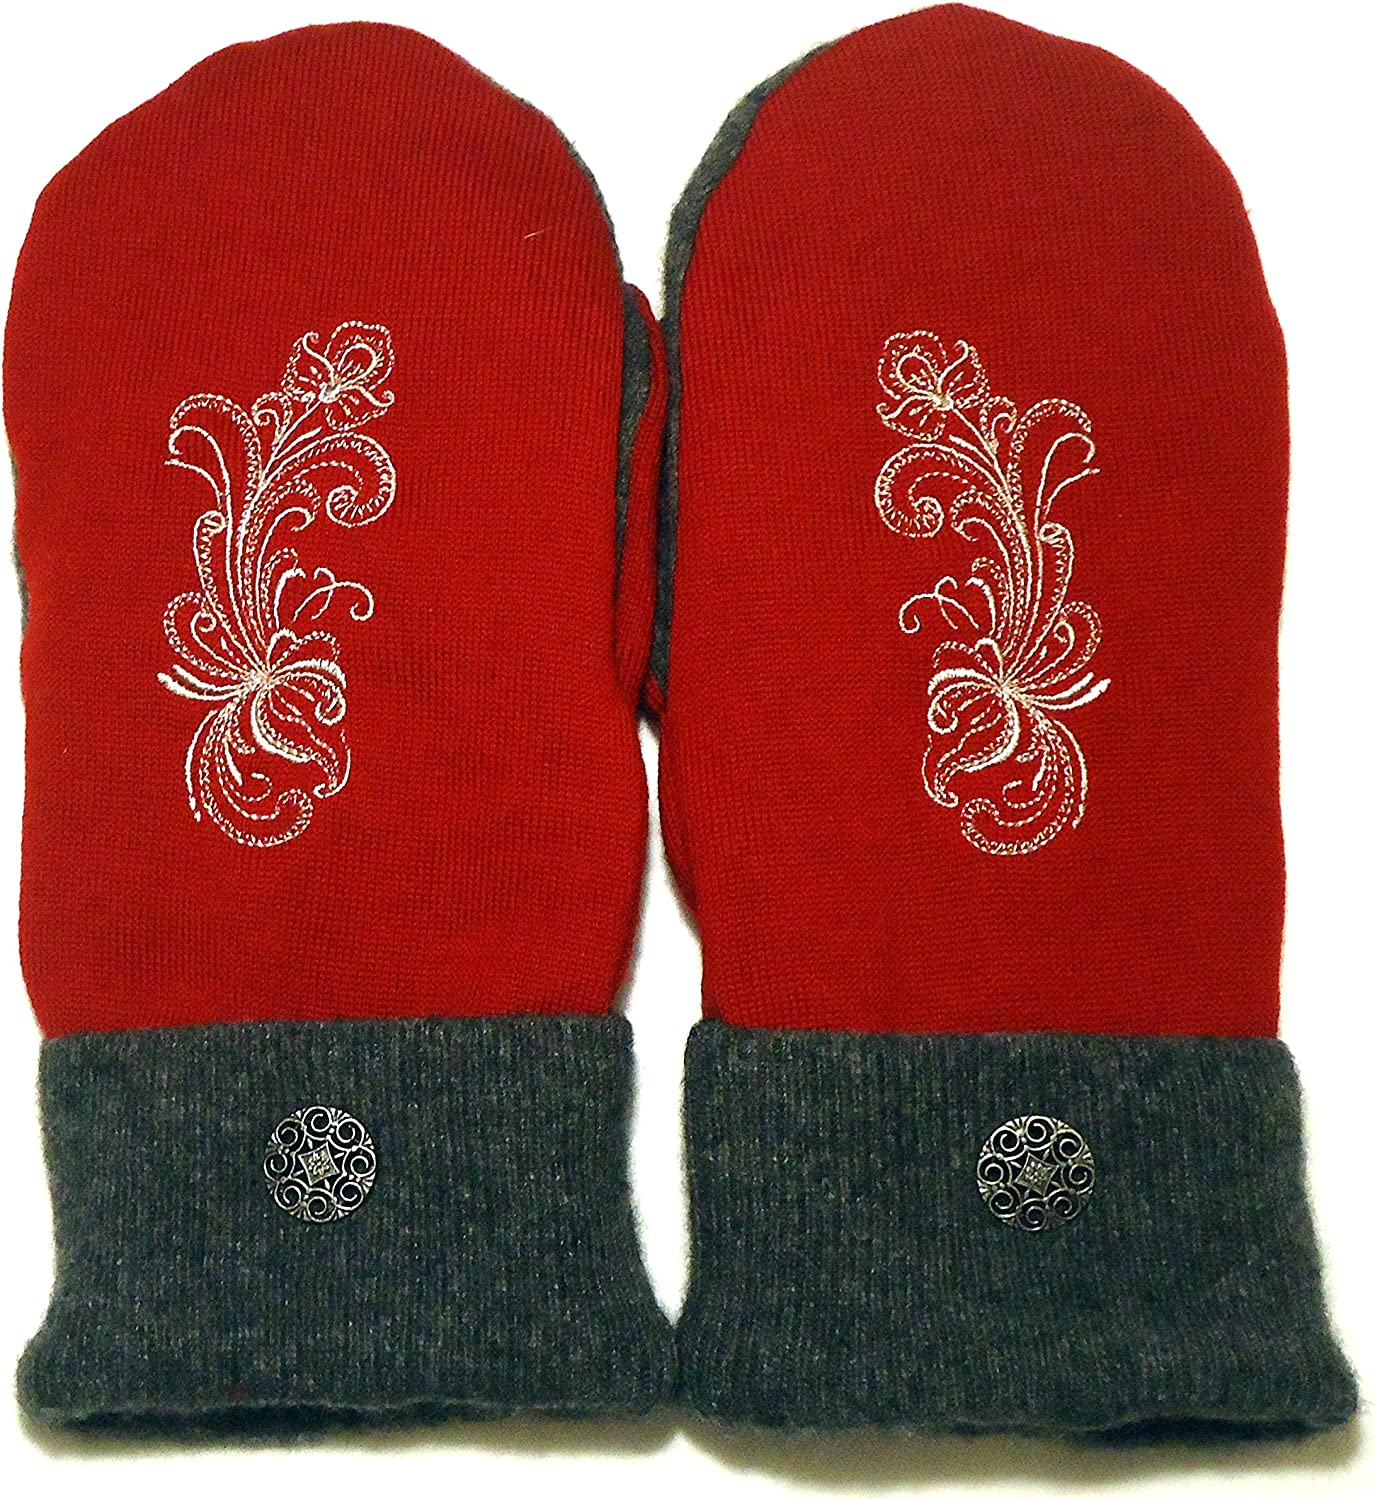 Integrity Designs Sweater Mittens, 100% Wool, Raspberry Red and Gray Color with Polar Fleece Lining, Adult Size Large, Super Thick, Rosemaling Folk Art Motif Embroidery, Contrasting Button